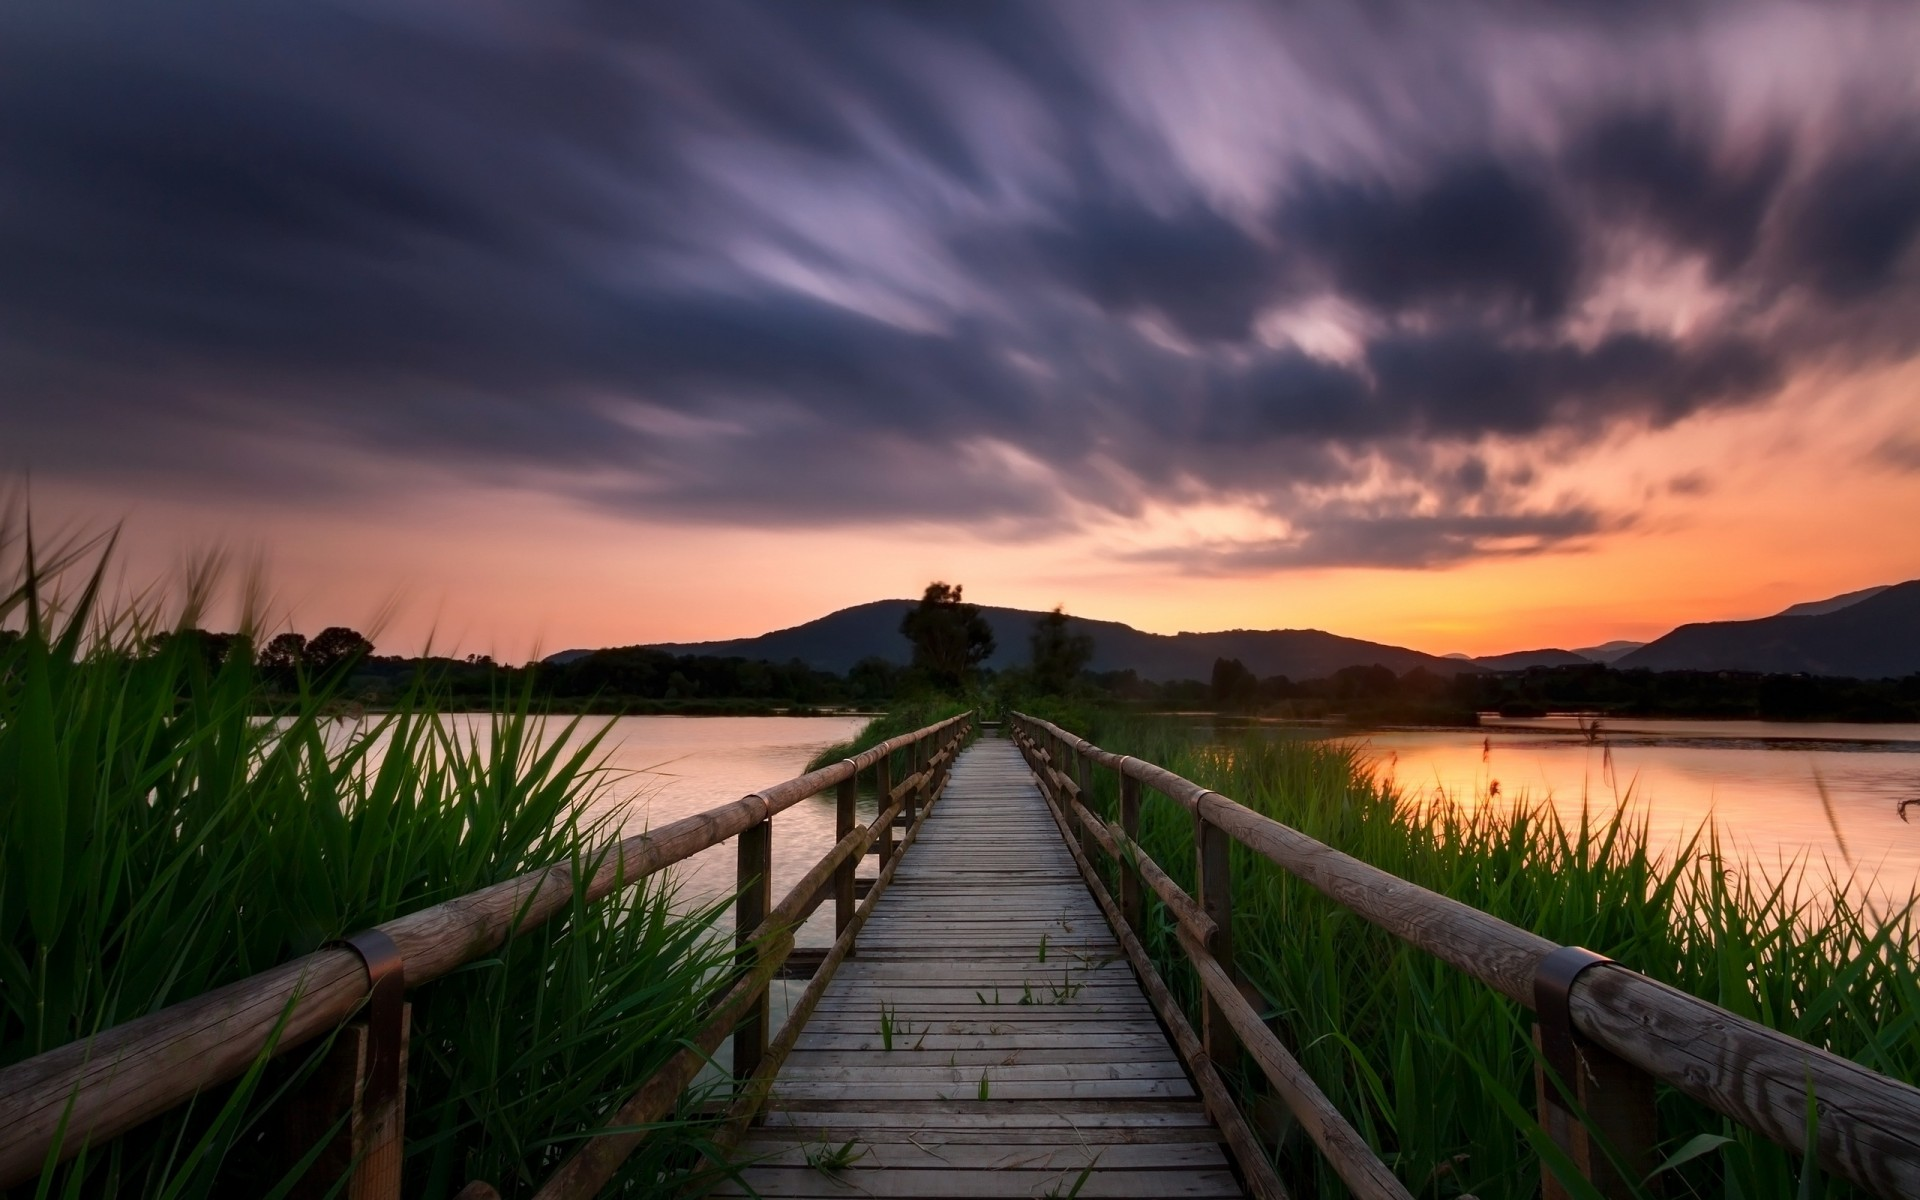 colorful sky, trellis bridge, lake,  grass